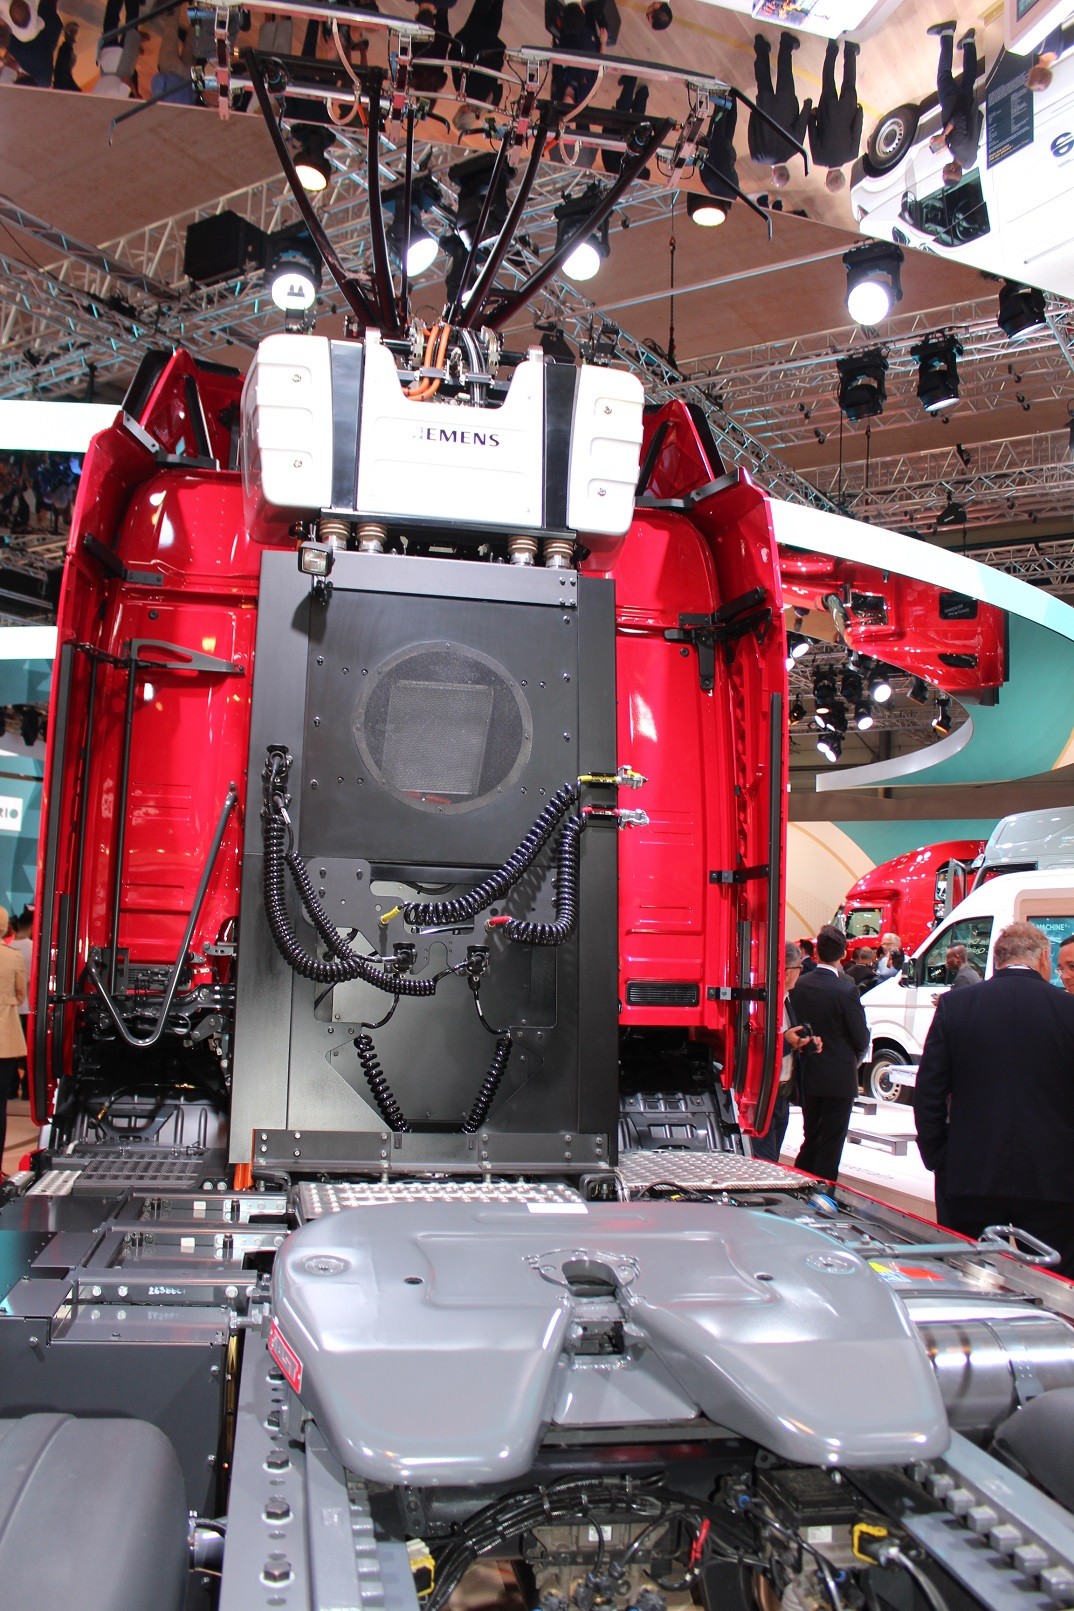 Scania Truck to use overhead power cables